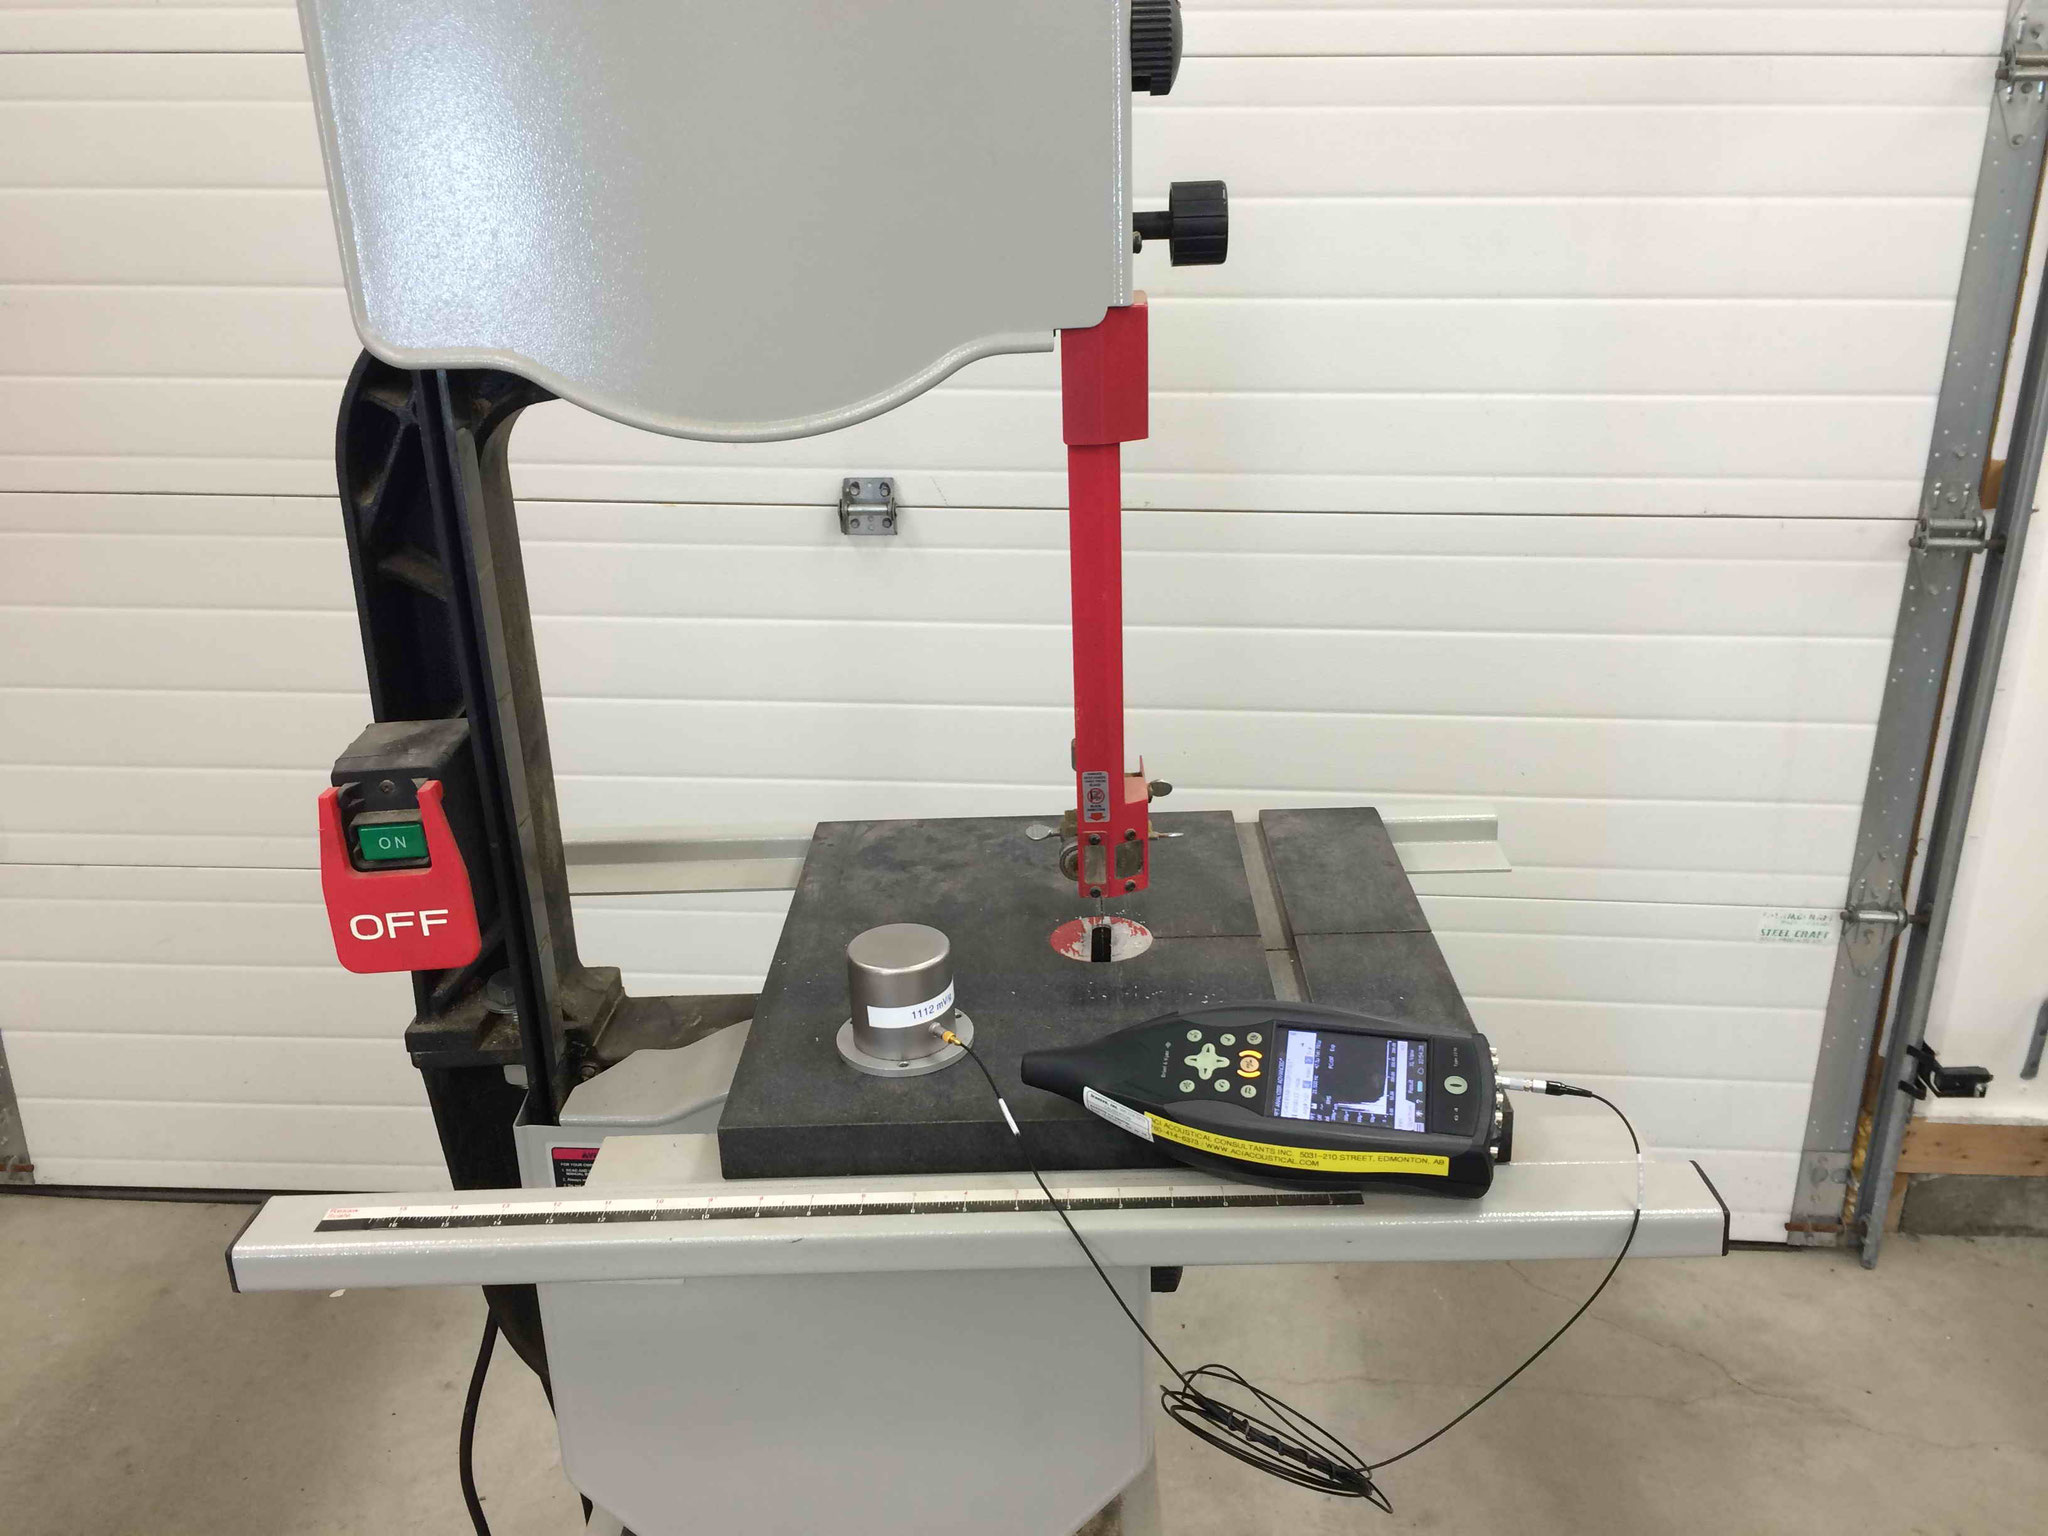 Vibration Measurement of Bandsaw